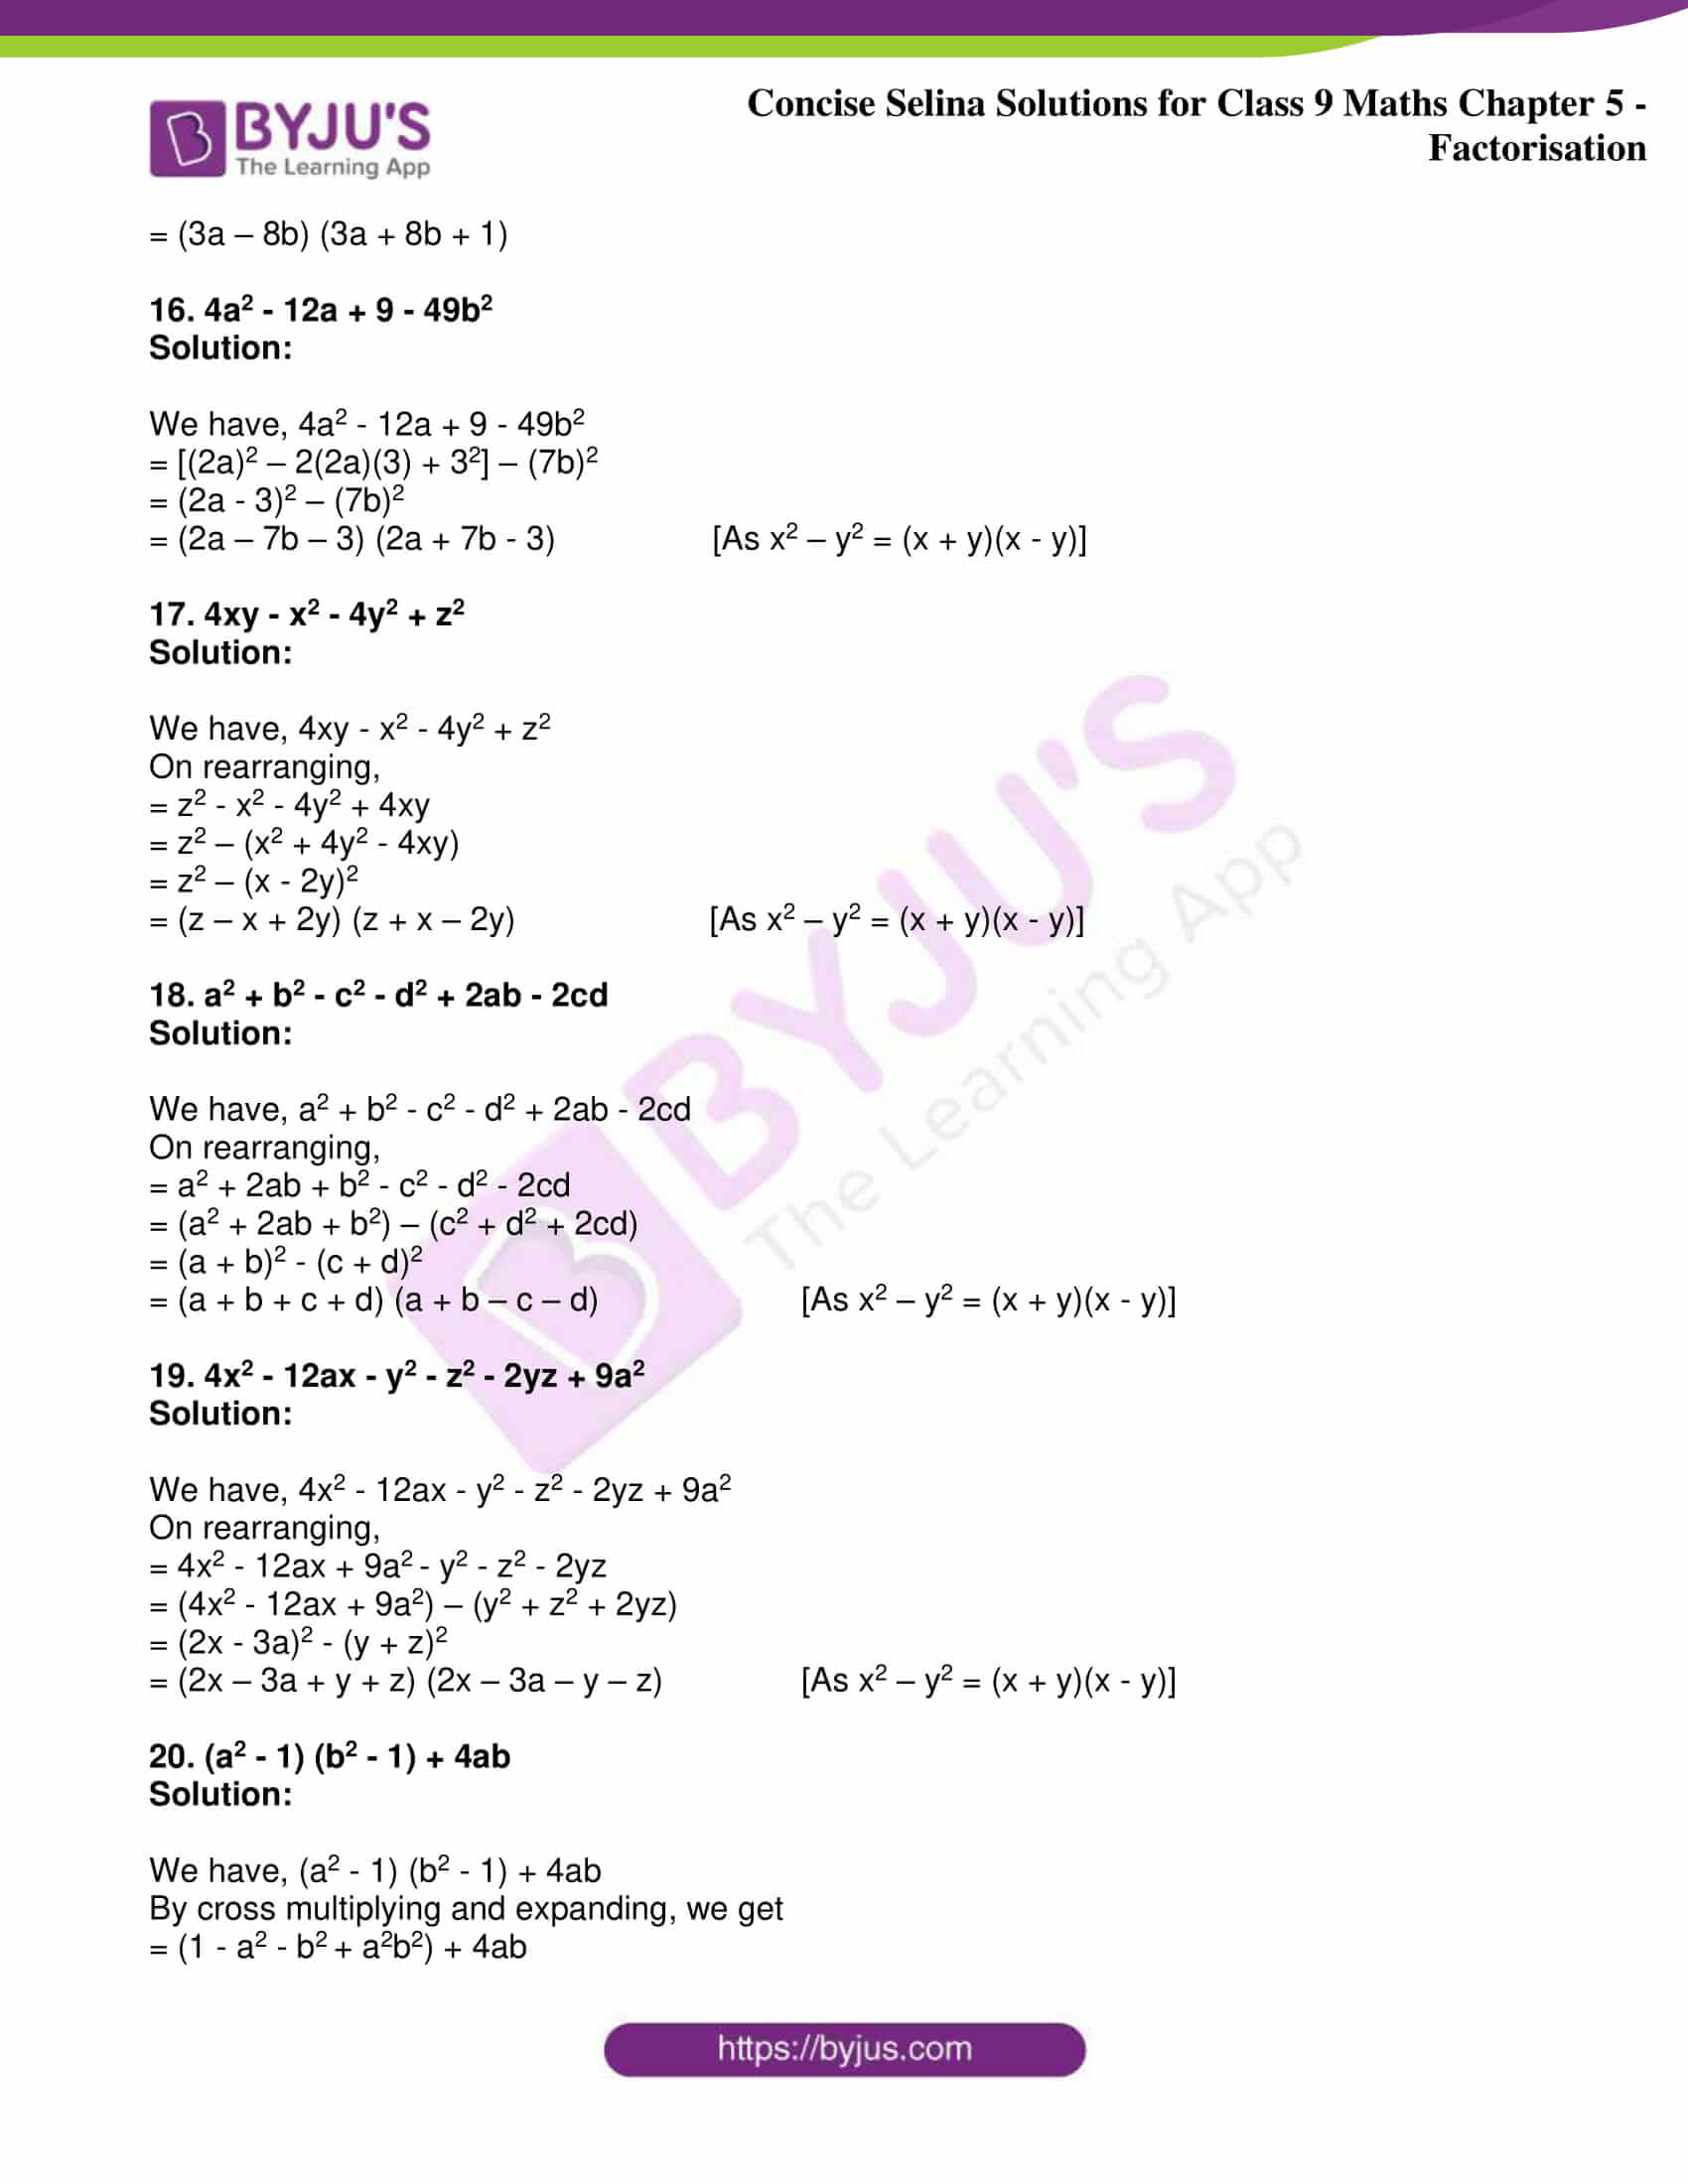 icse class 9 maths may10 selina solutions chapter 5 factorisation 16